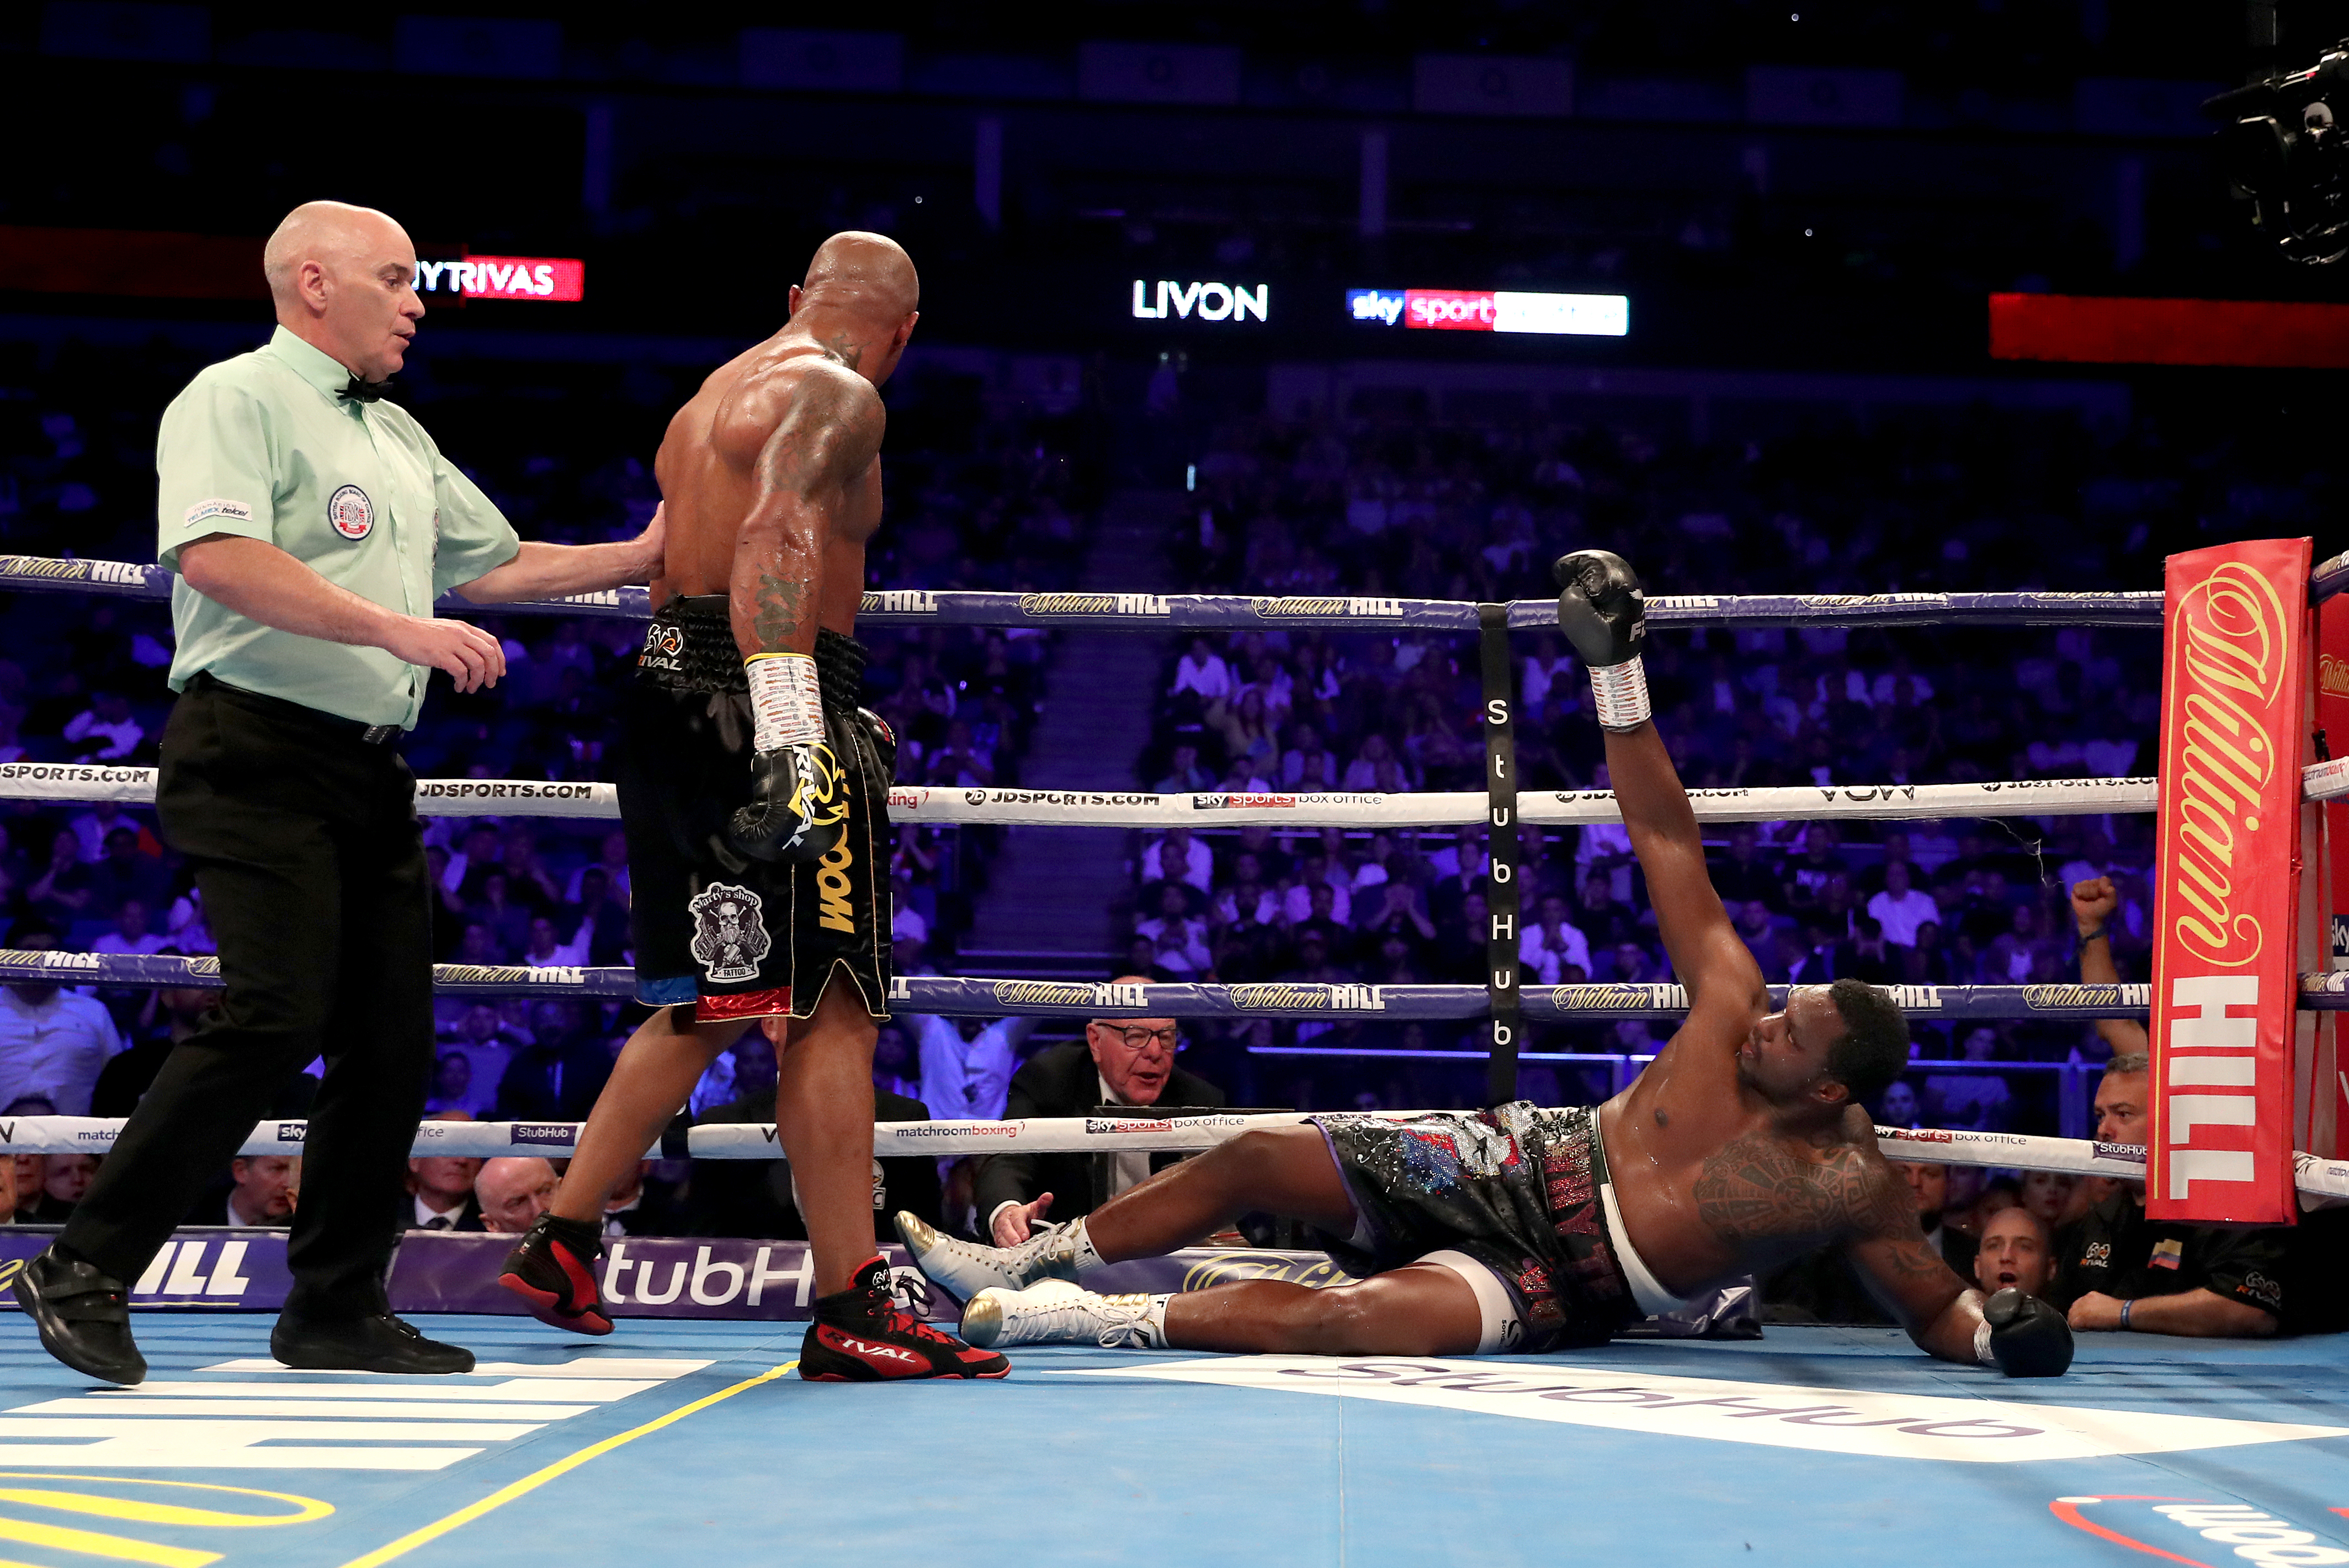 Dillian Whyte reportedly tested positive for banned substance before fighting Oscar Rivas